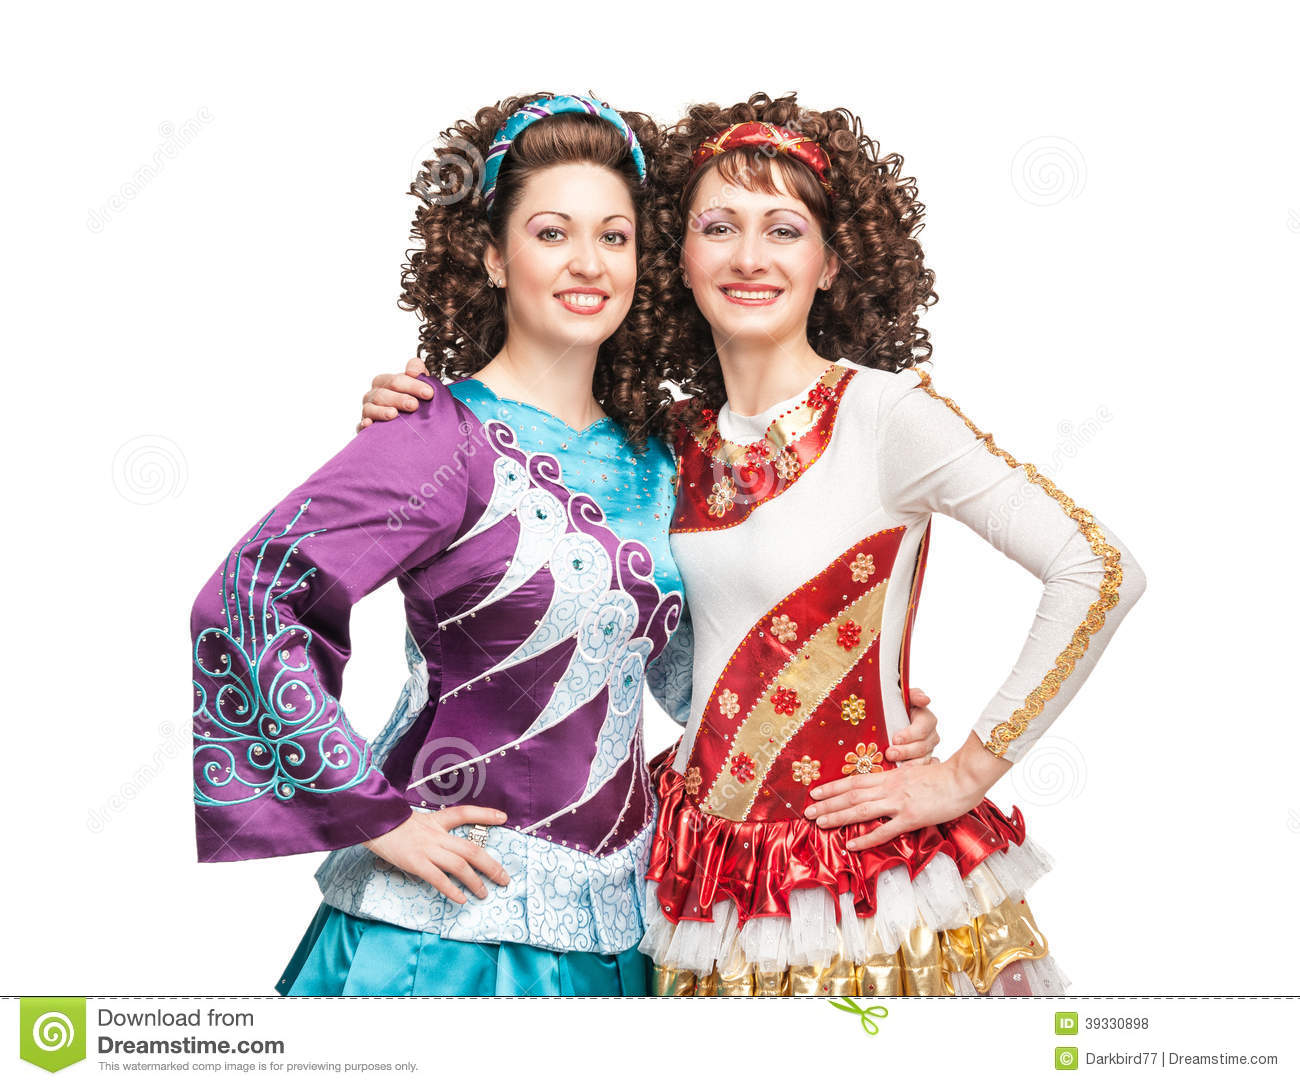 Happy young women in irish dance dresses and wigs posing isolated 0ba2d102c0